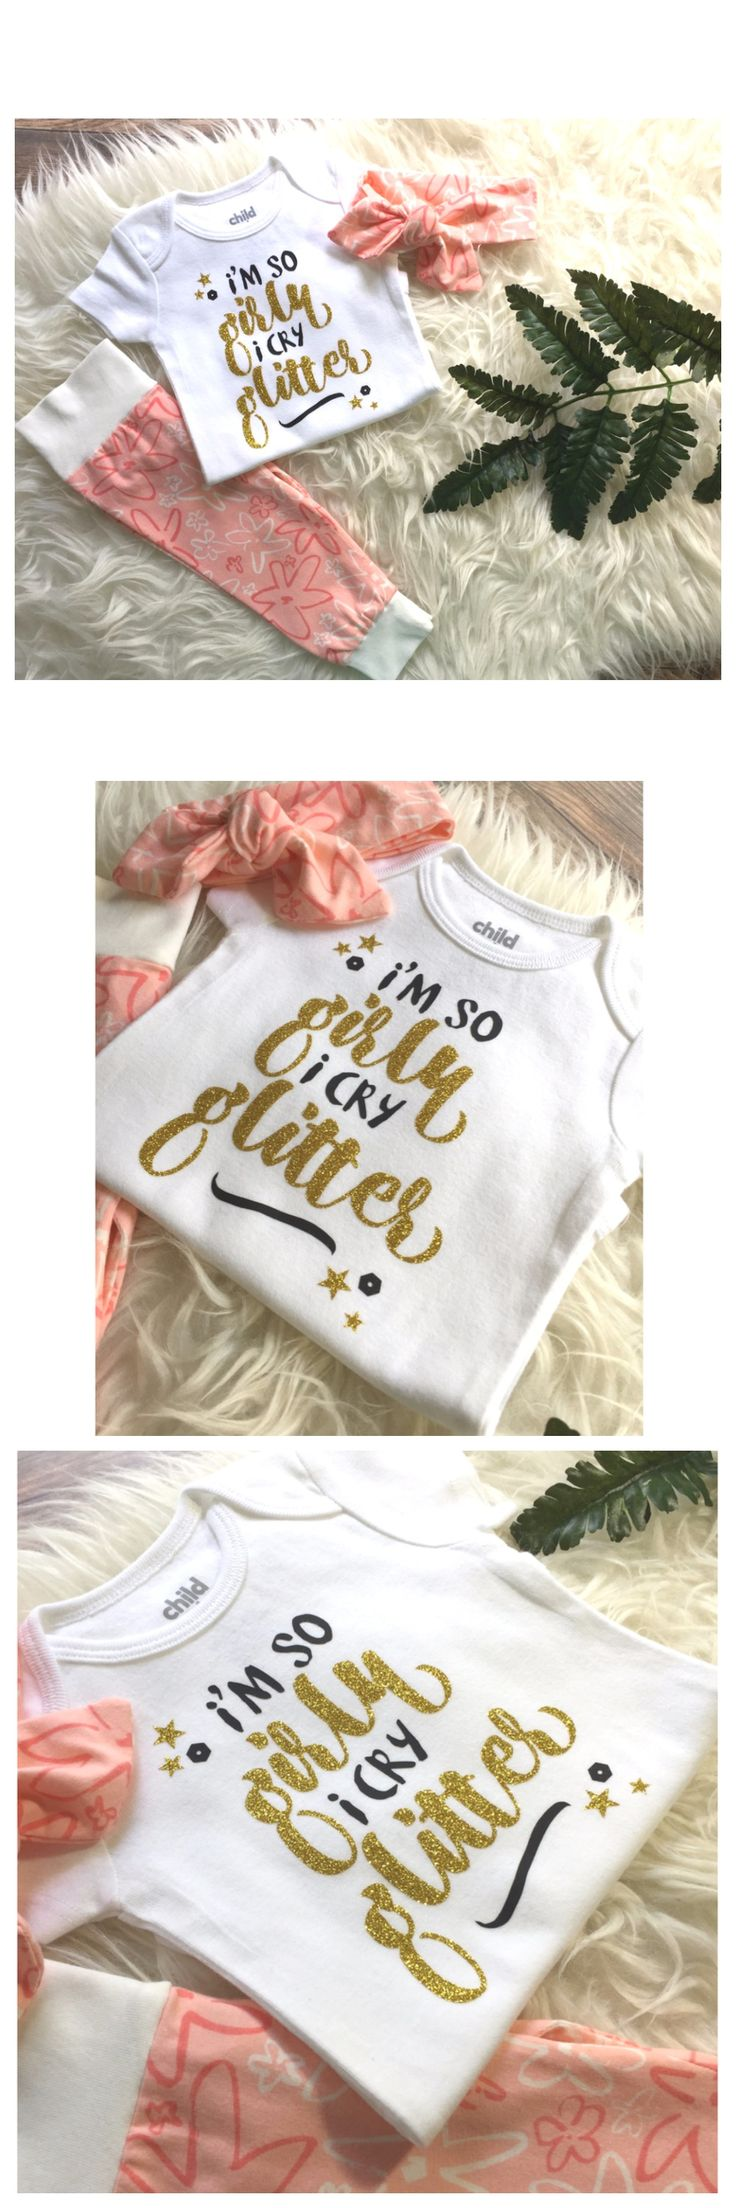 Looking for a special unique baby shower gift? This outfit would make a perfect infant coming home hospital outfit. Toddler sizes available also.